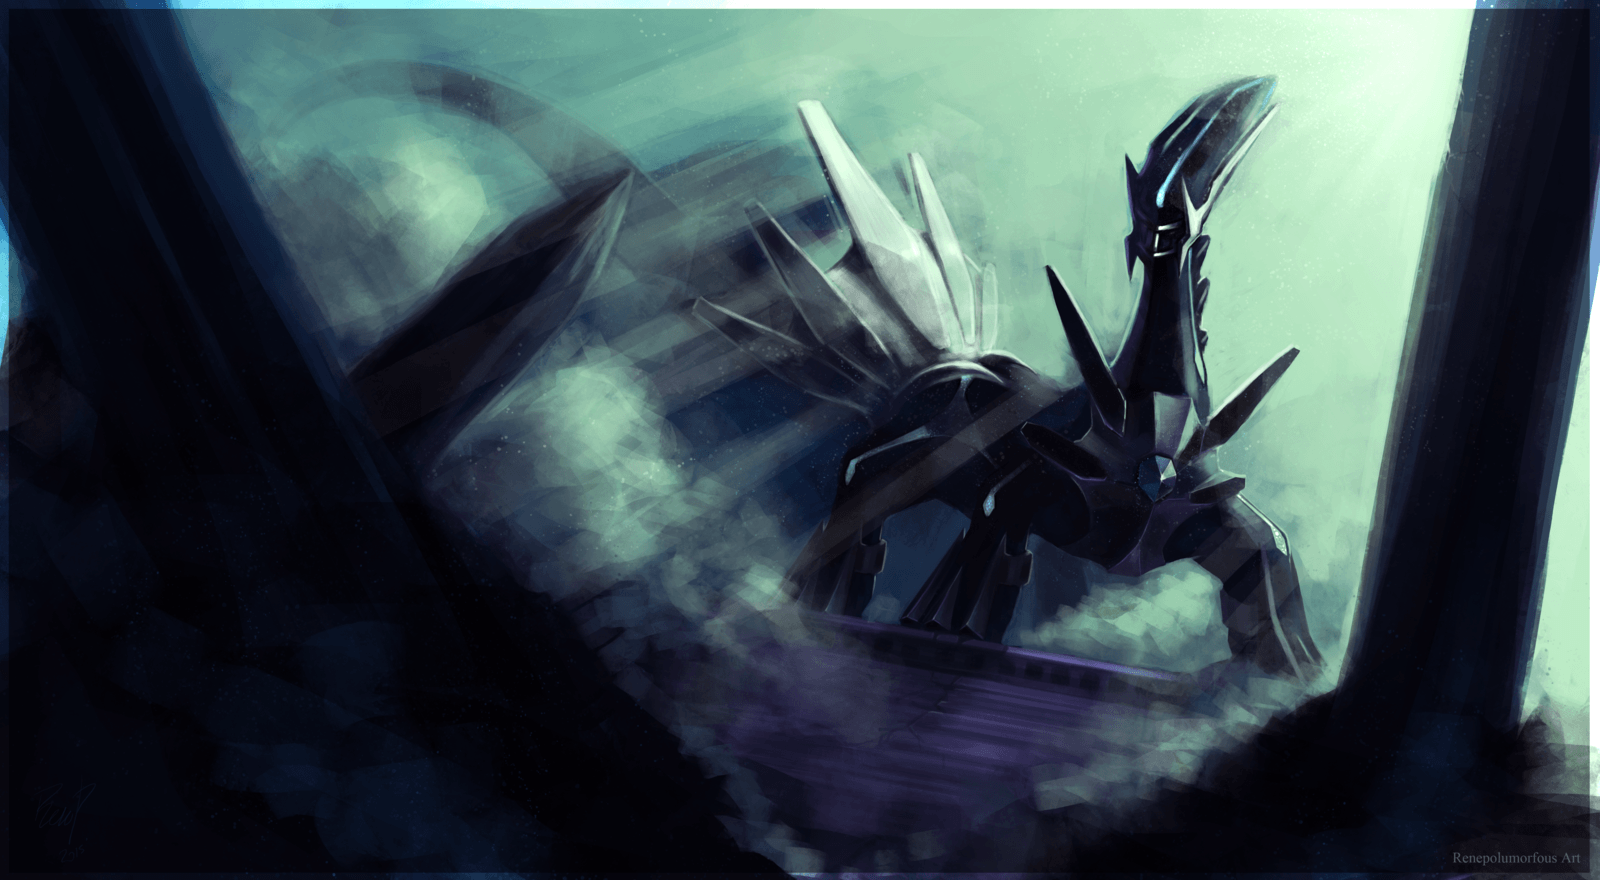 13 Dialga (Pokémon) HD Wallpapers | Background Images - Wallpaper Abyss